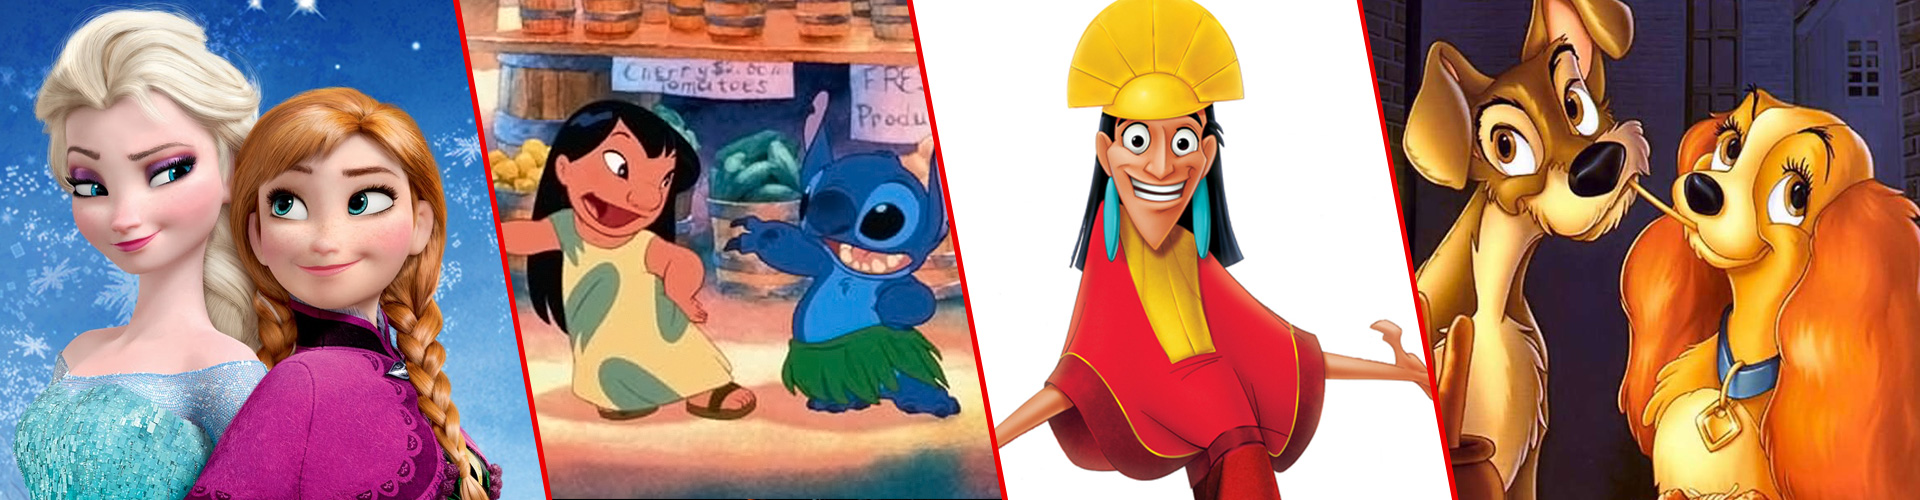 6 Disney movies we want made in live action